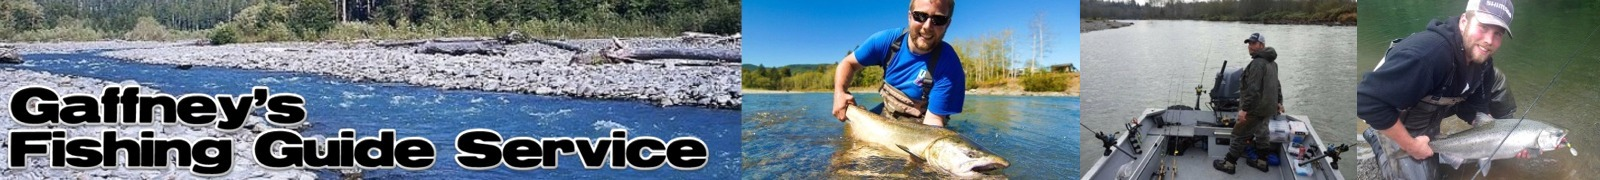 Gaffney Fishing - Washington Steelhead Fishing Guide Service